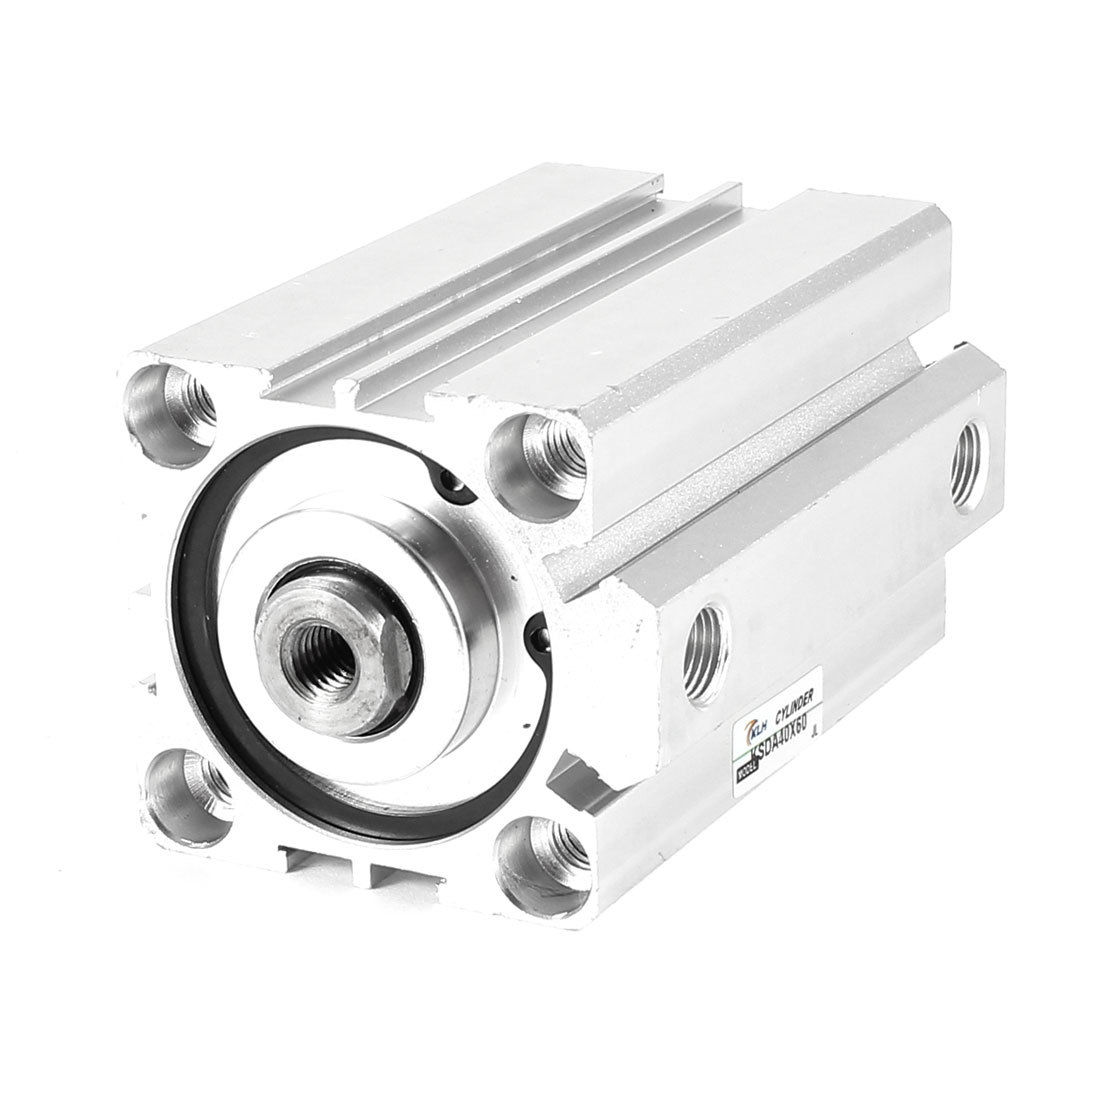 1 Pcs 50mm Bore 20mm Stroke Stainless steel Pneumatic Air Cylinder SDA50-20 мужская классическая рубашка dermay slim fit 4xl camisa masculina 6colors dm03241827